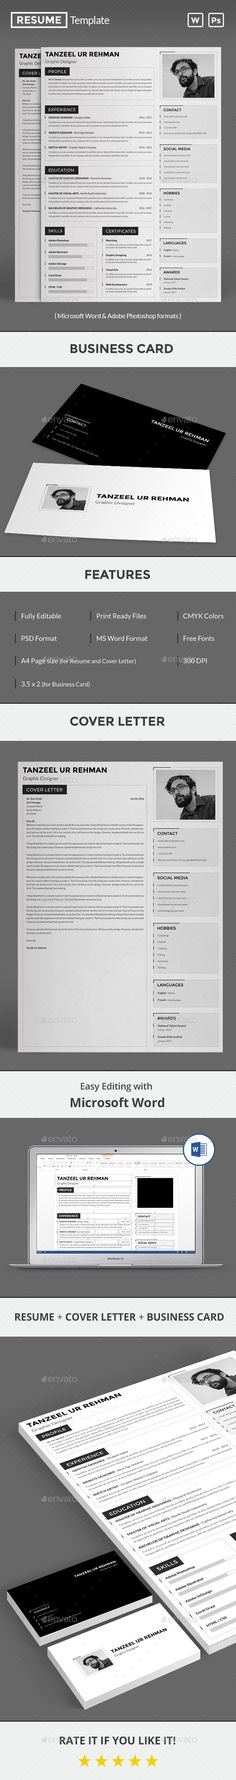 #Resume - Resumes #Stationery Download here: https://graphicriver.net/item/resume/19449077?ref=alena994